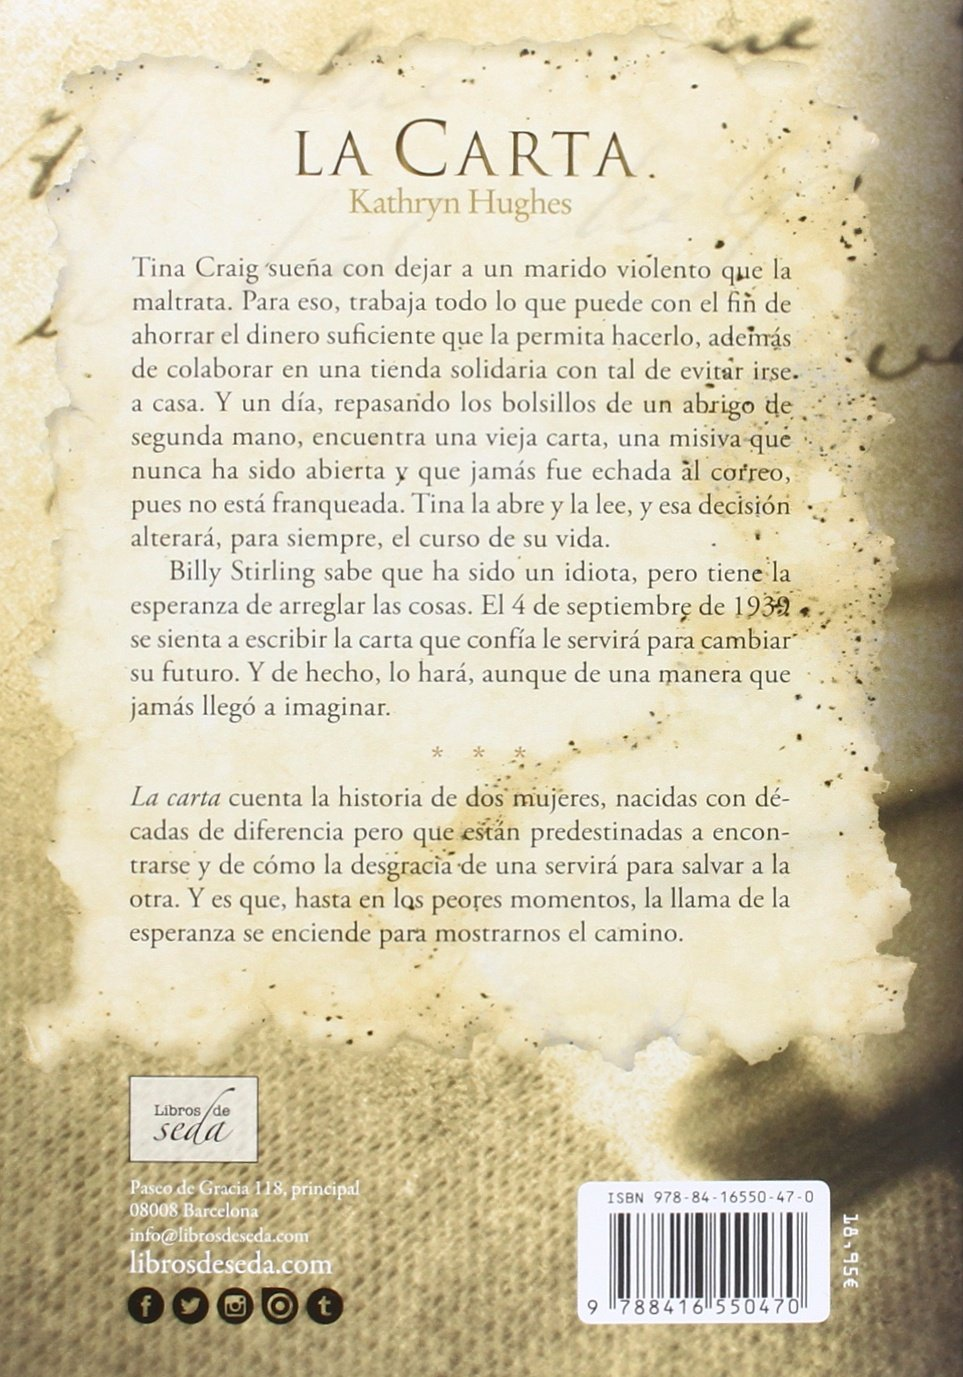 La carta (Spanish Edition): Kathryn Hughes, Libros de Seda: 9788416550470: Amazon.com: Books